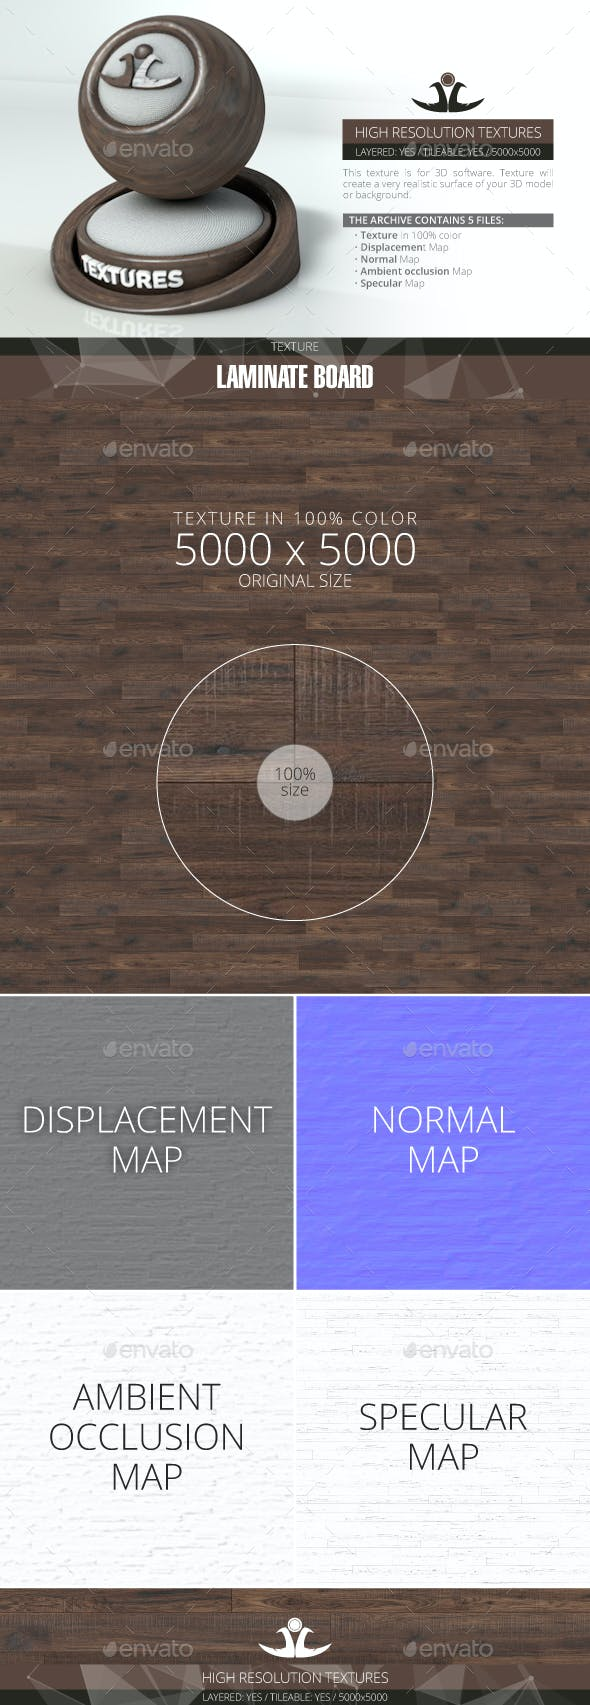 Laminate Board 86 - 3DOcean Item for Sale